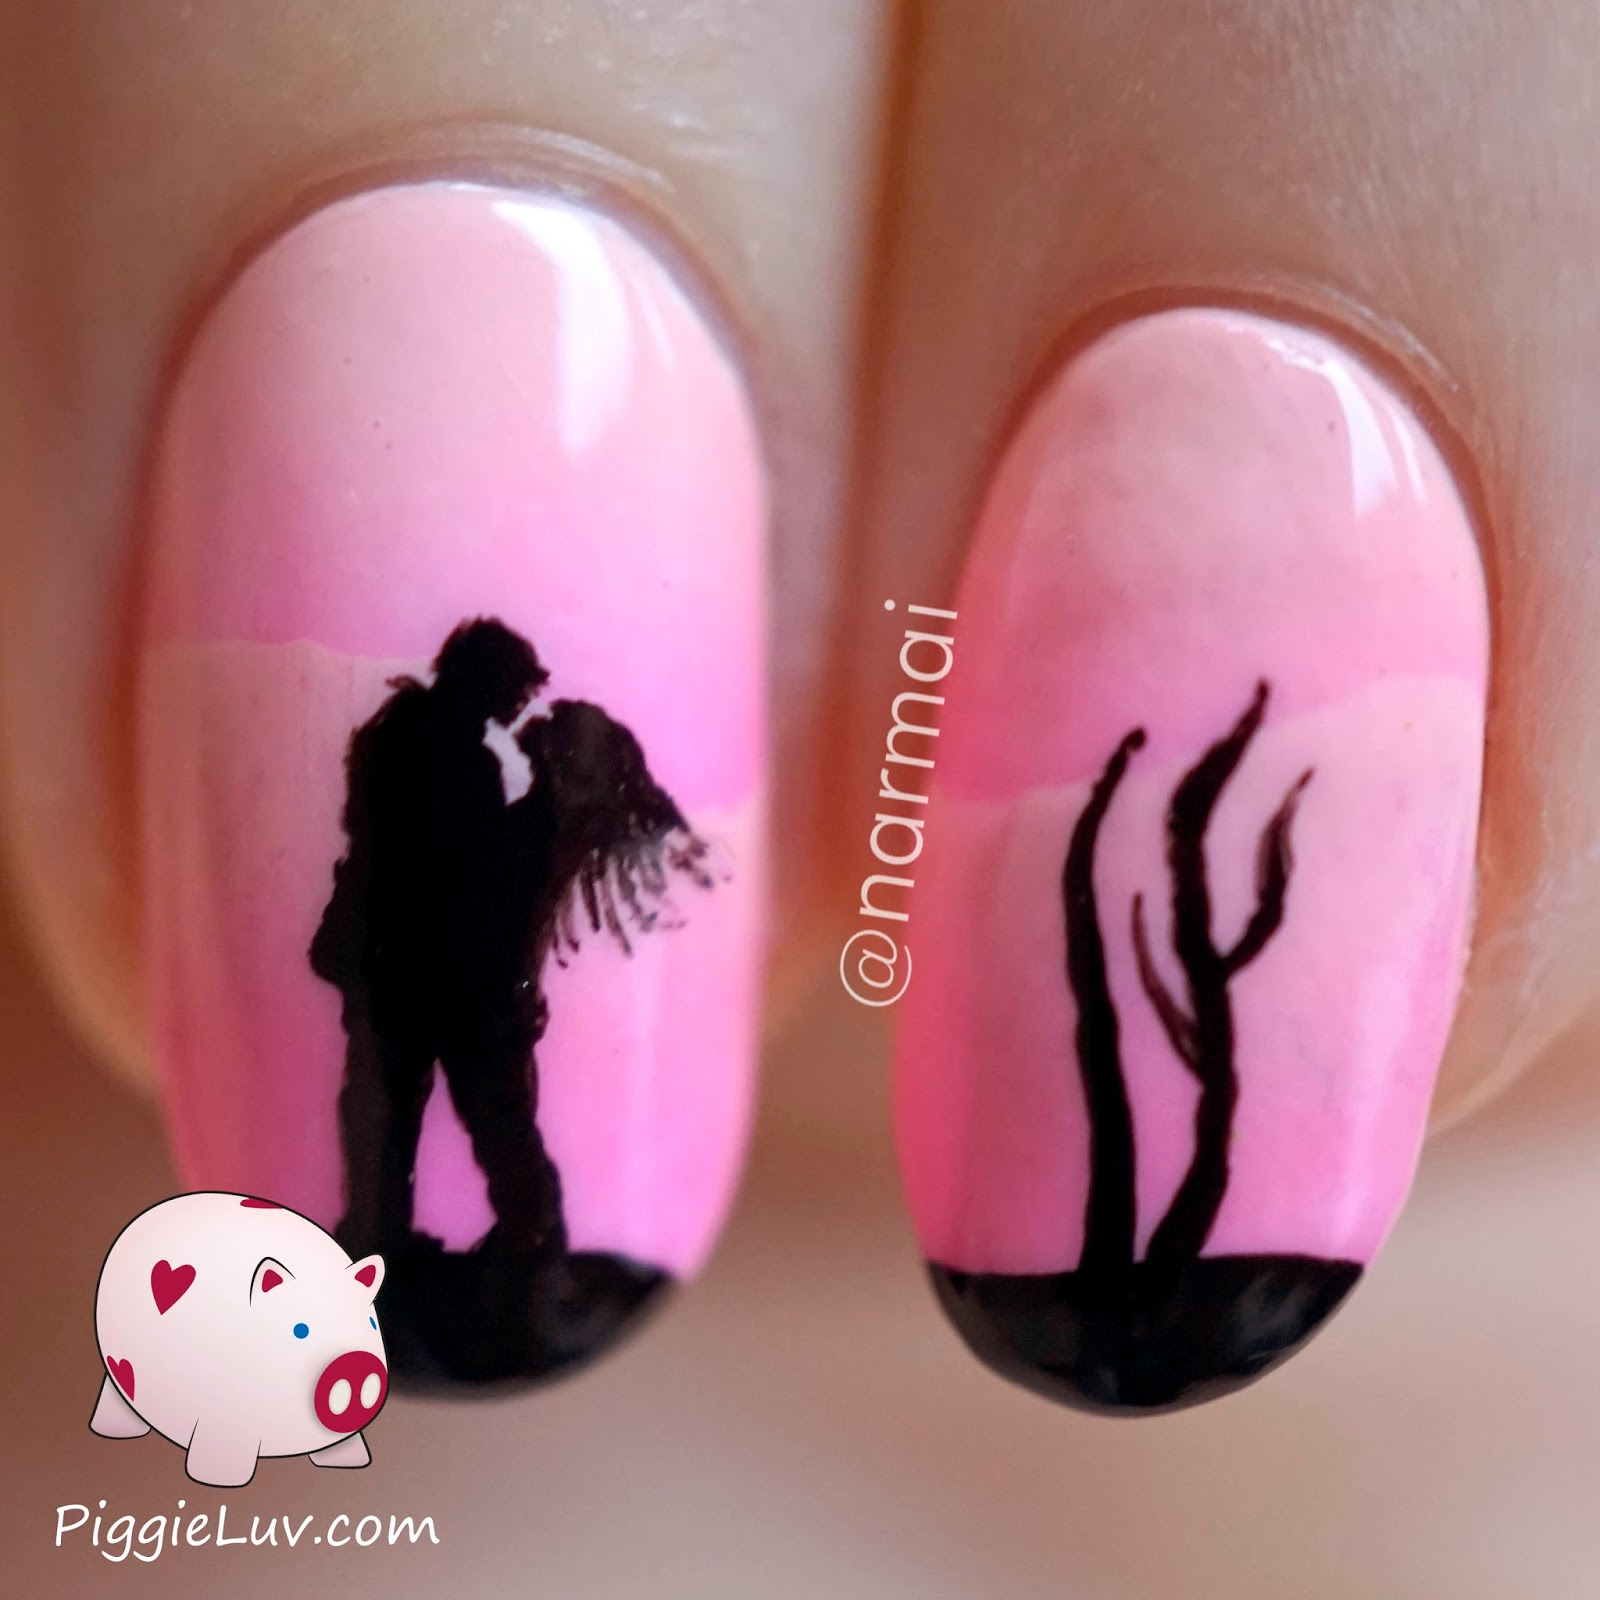 Piggieluv Pink Scaled Gradient With Freehand Silhouette Nail Art